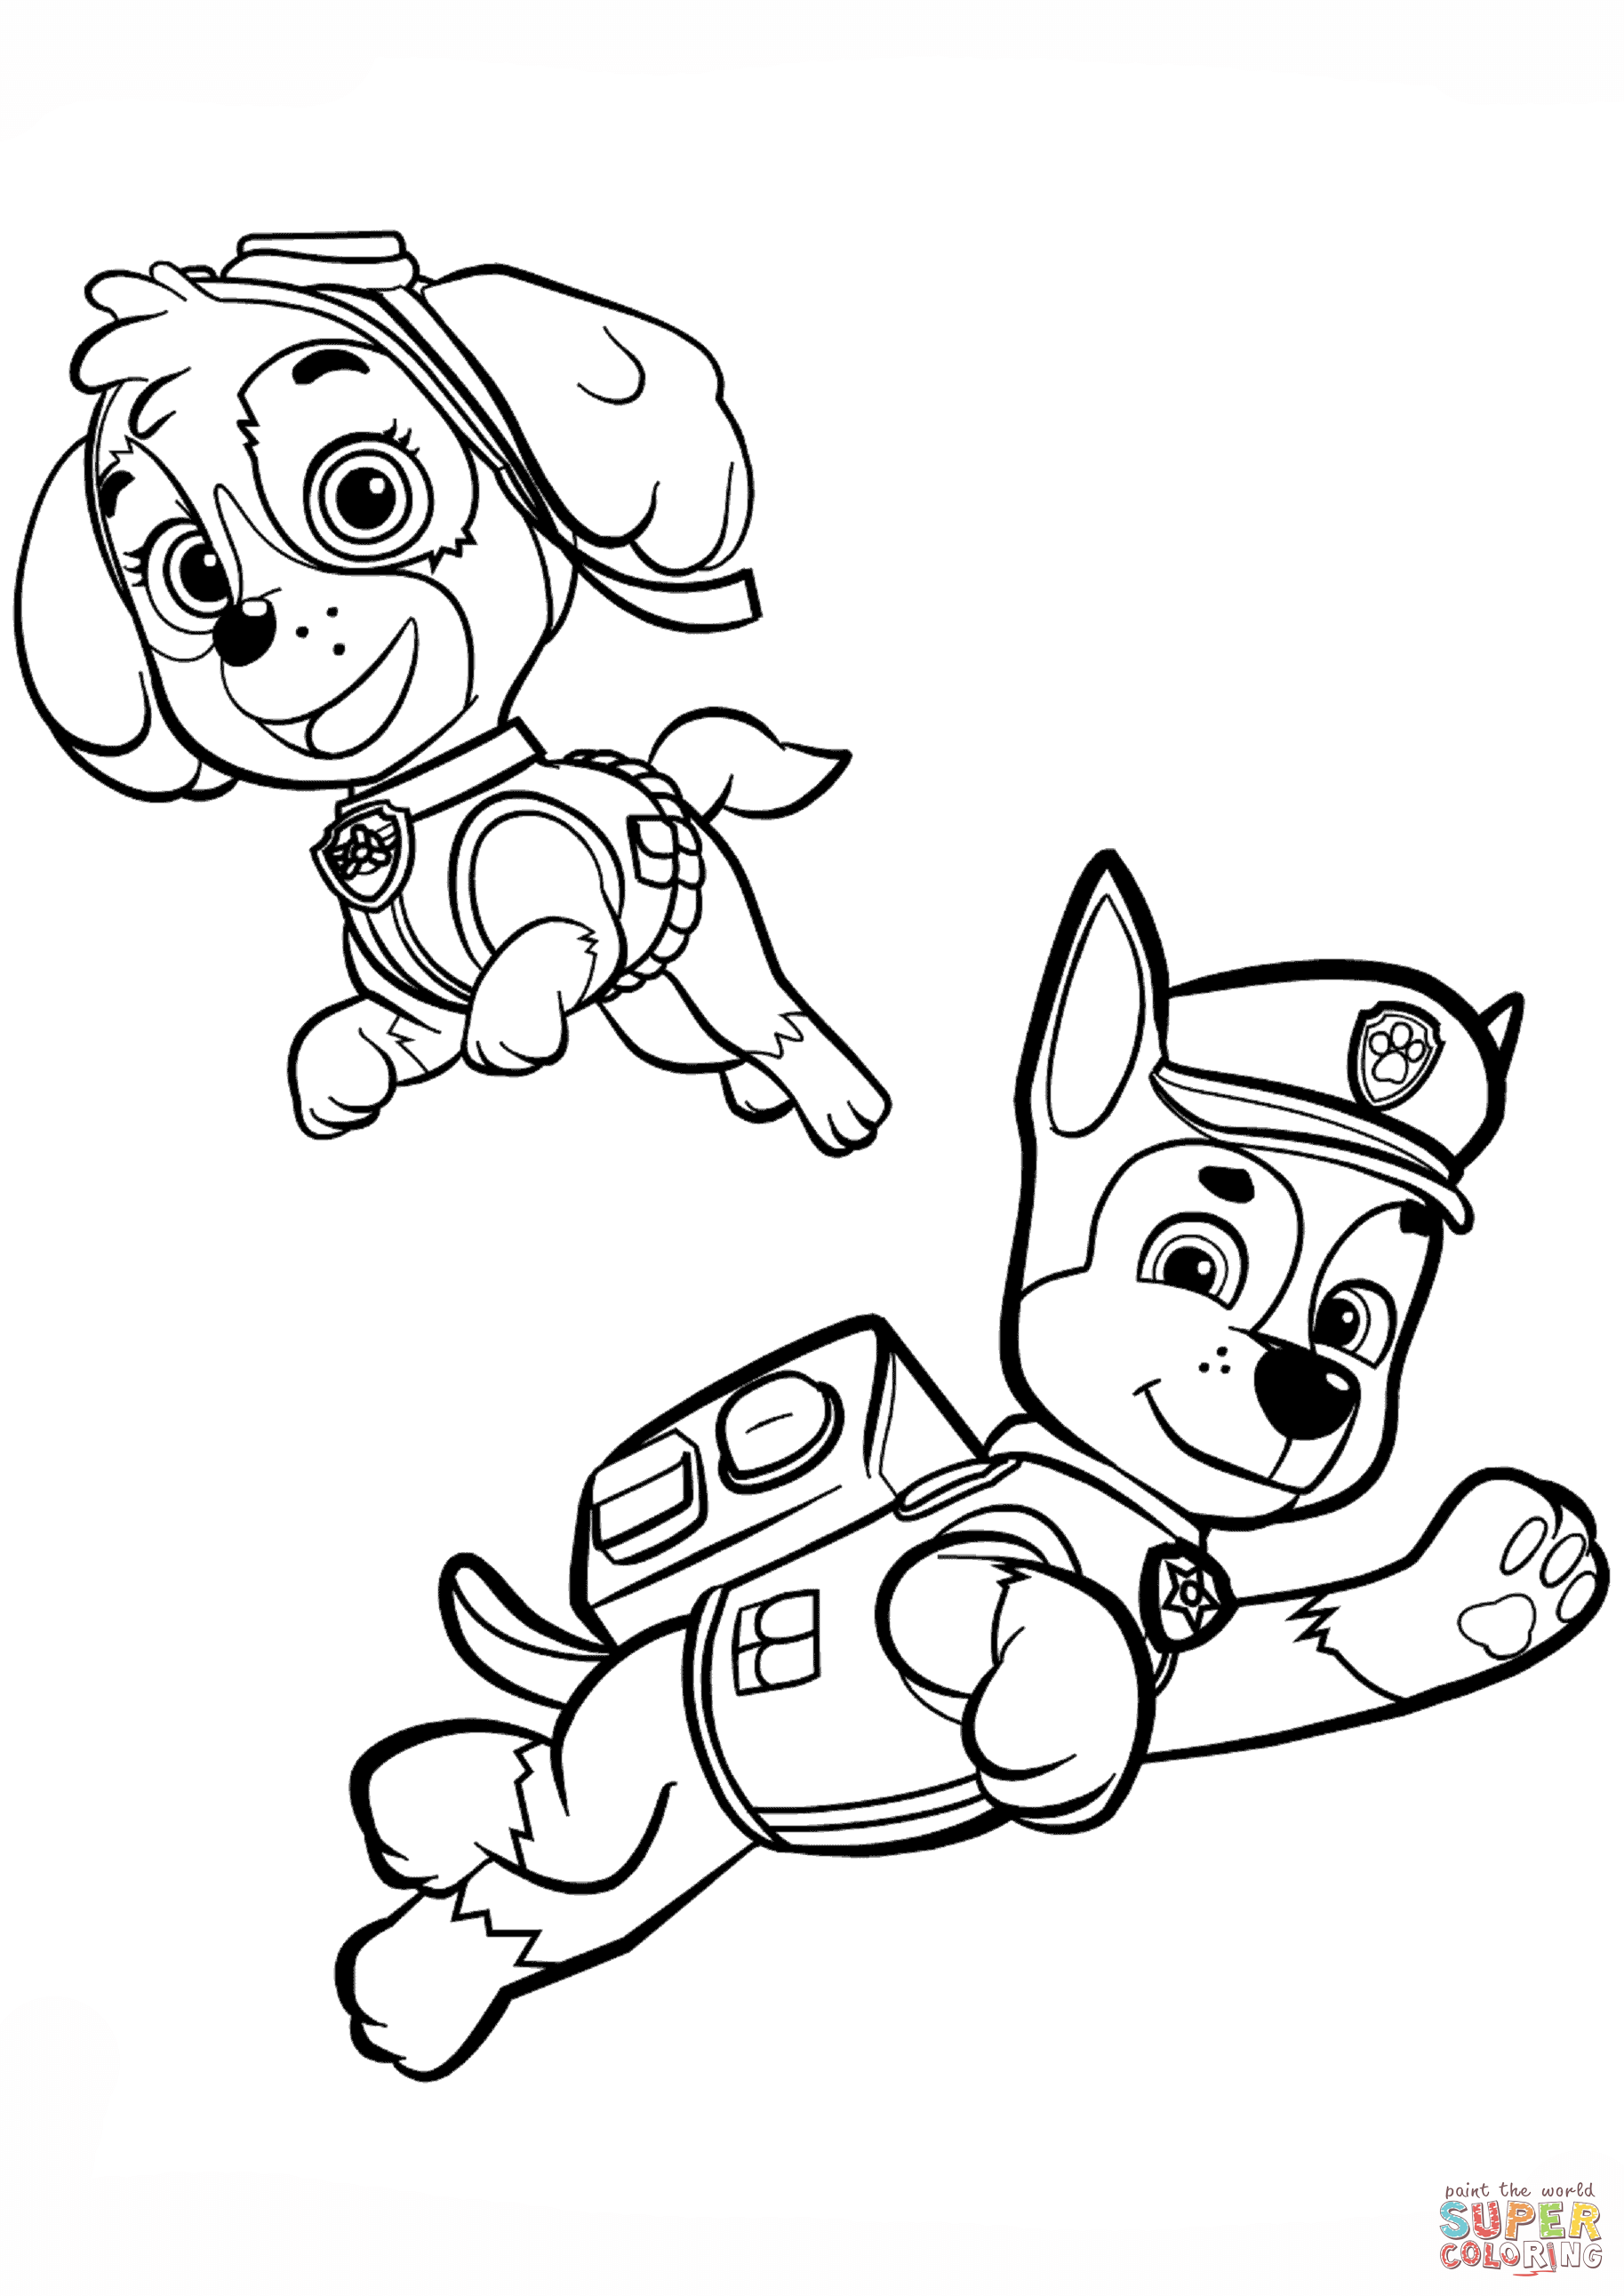 Chase And Skye Coloring Page